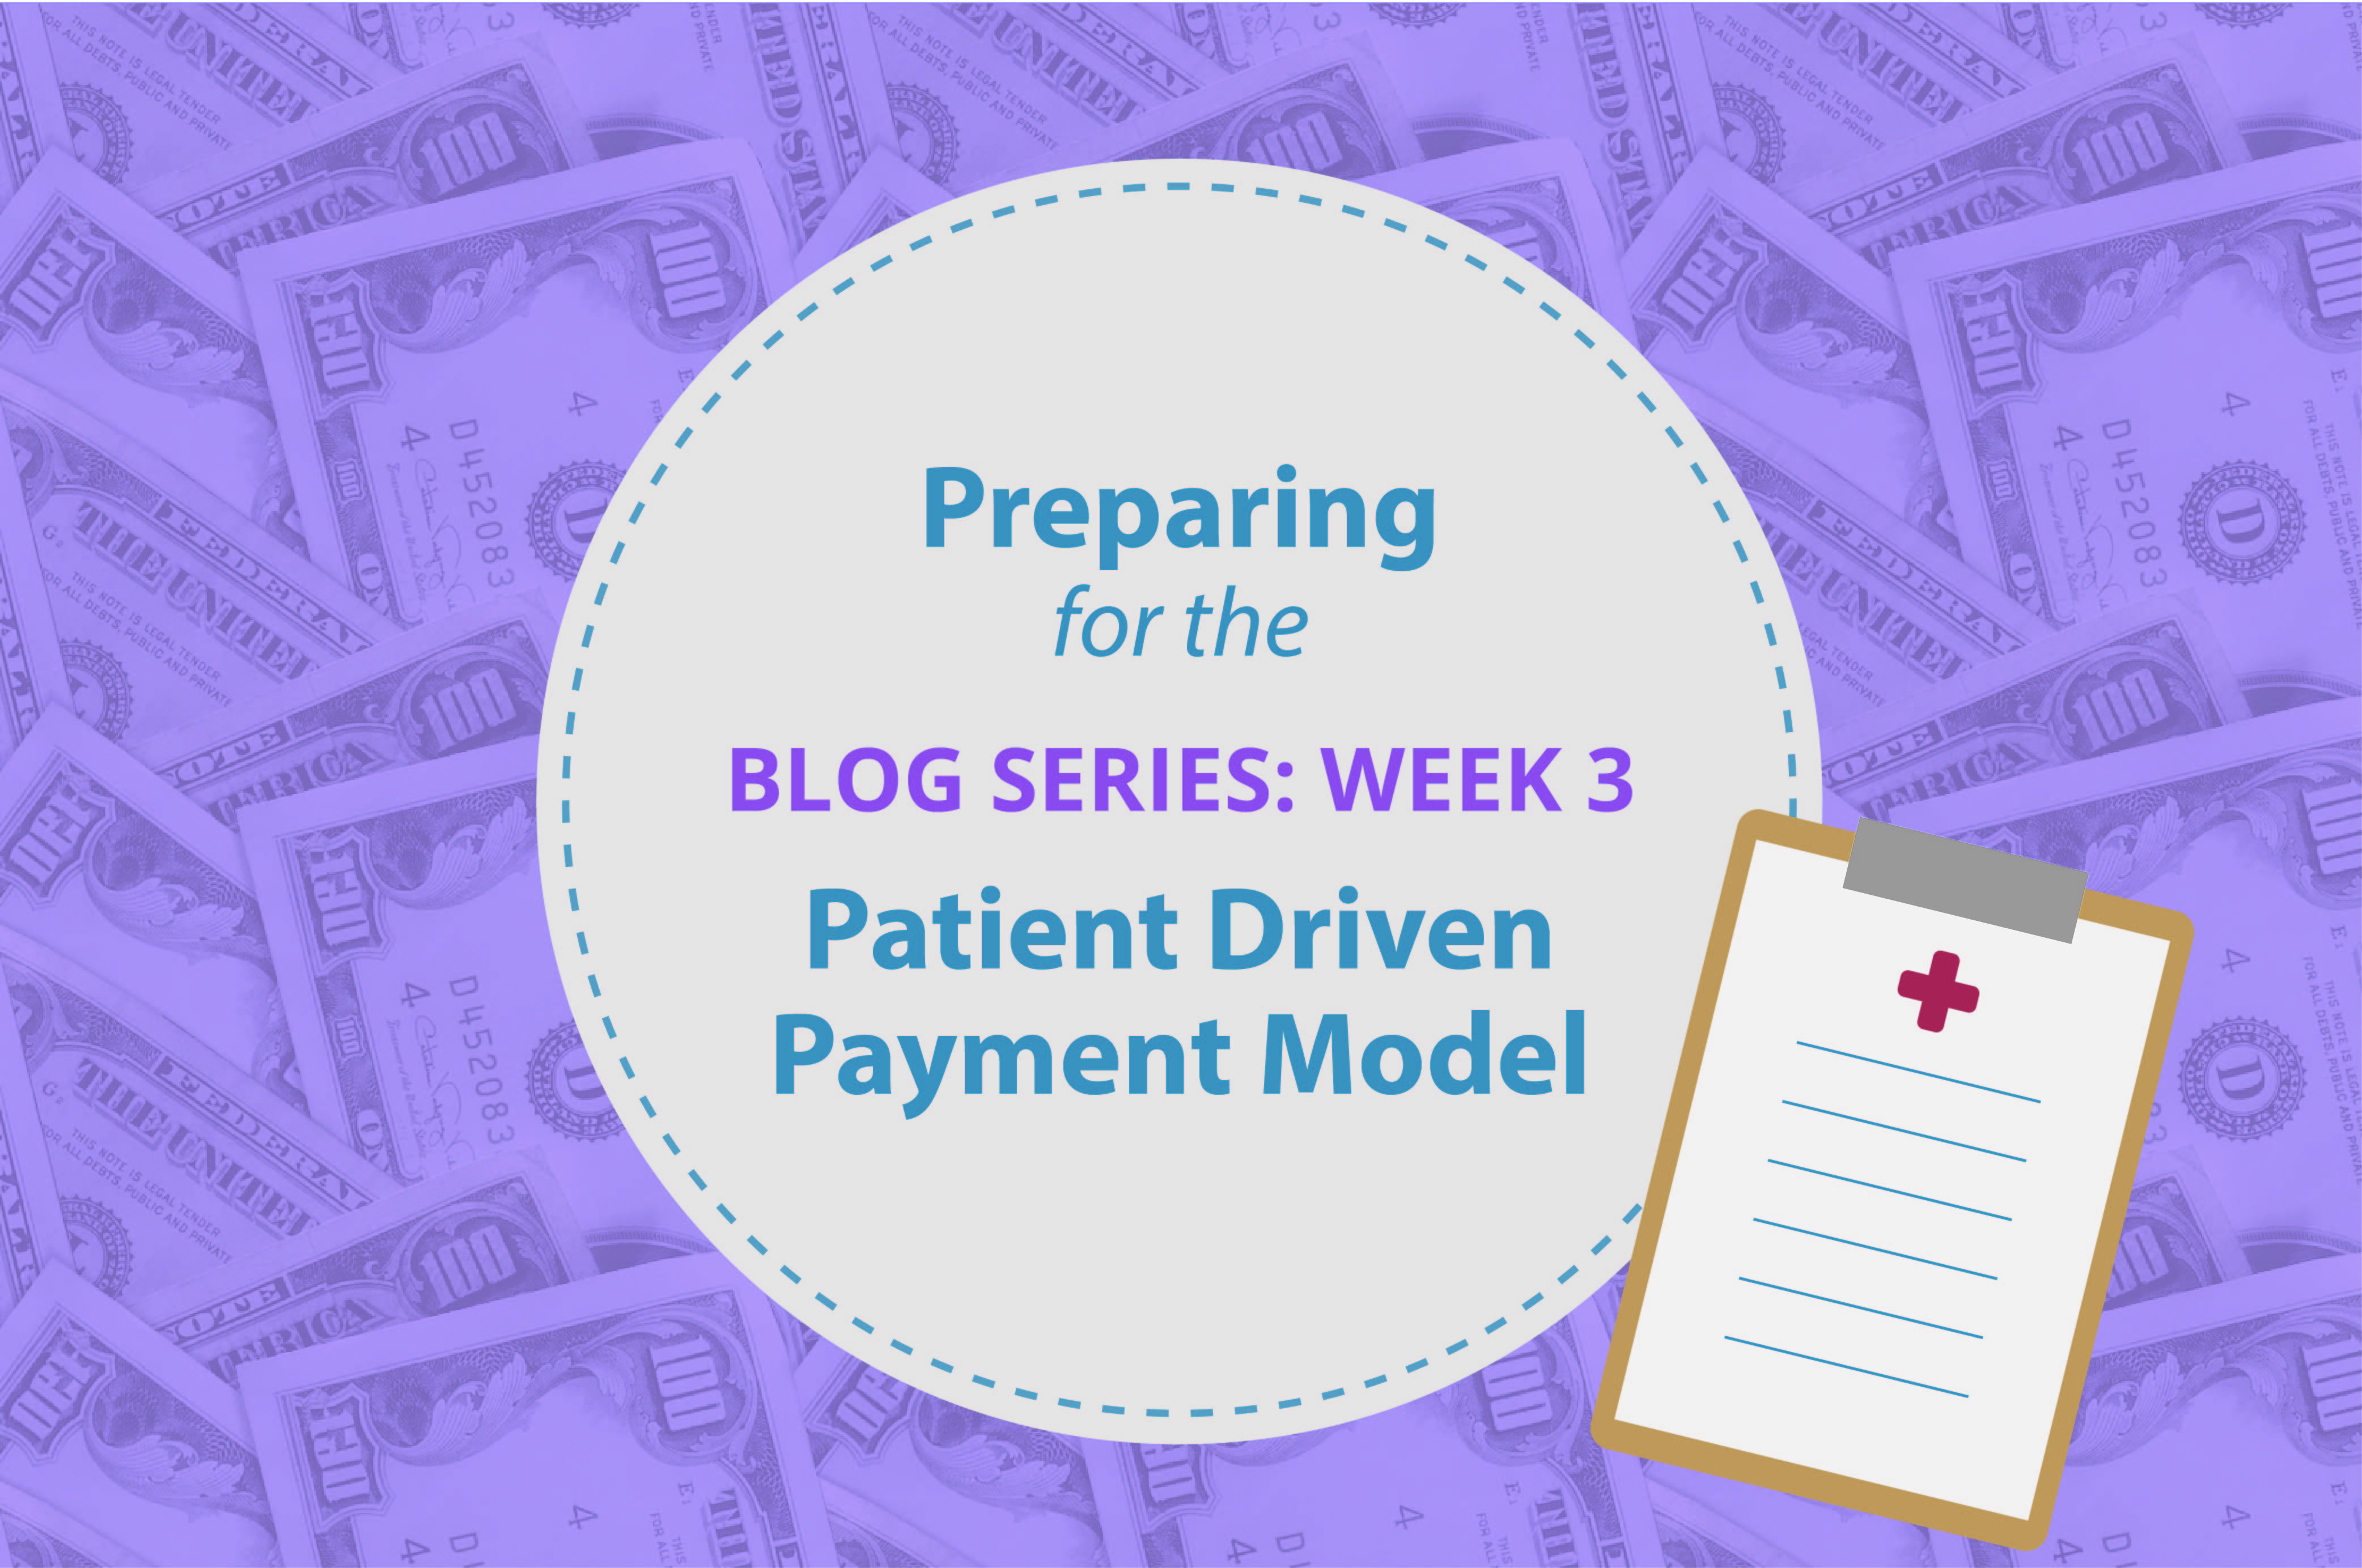 [Blog Series] Preparing for the Patient Driven Payment Model (PDPM): Week 3